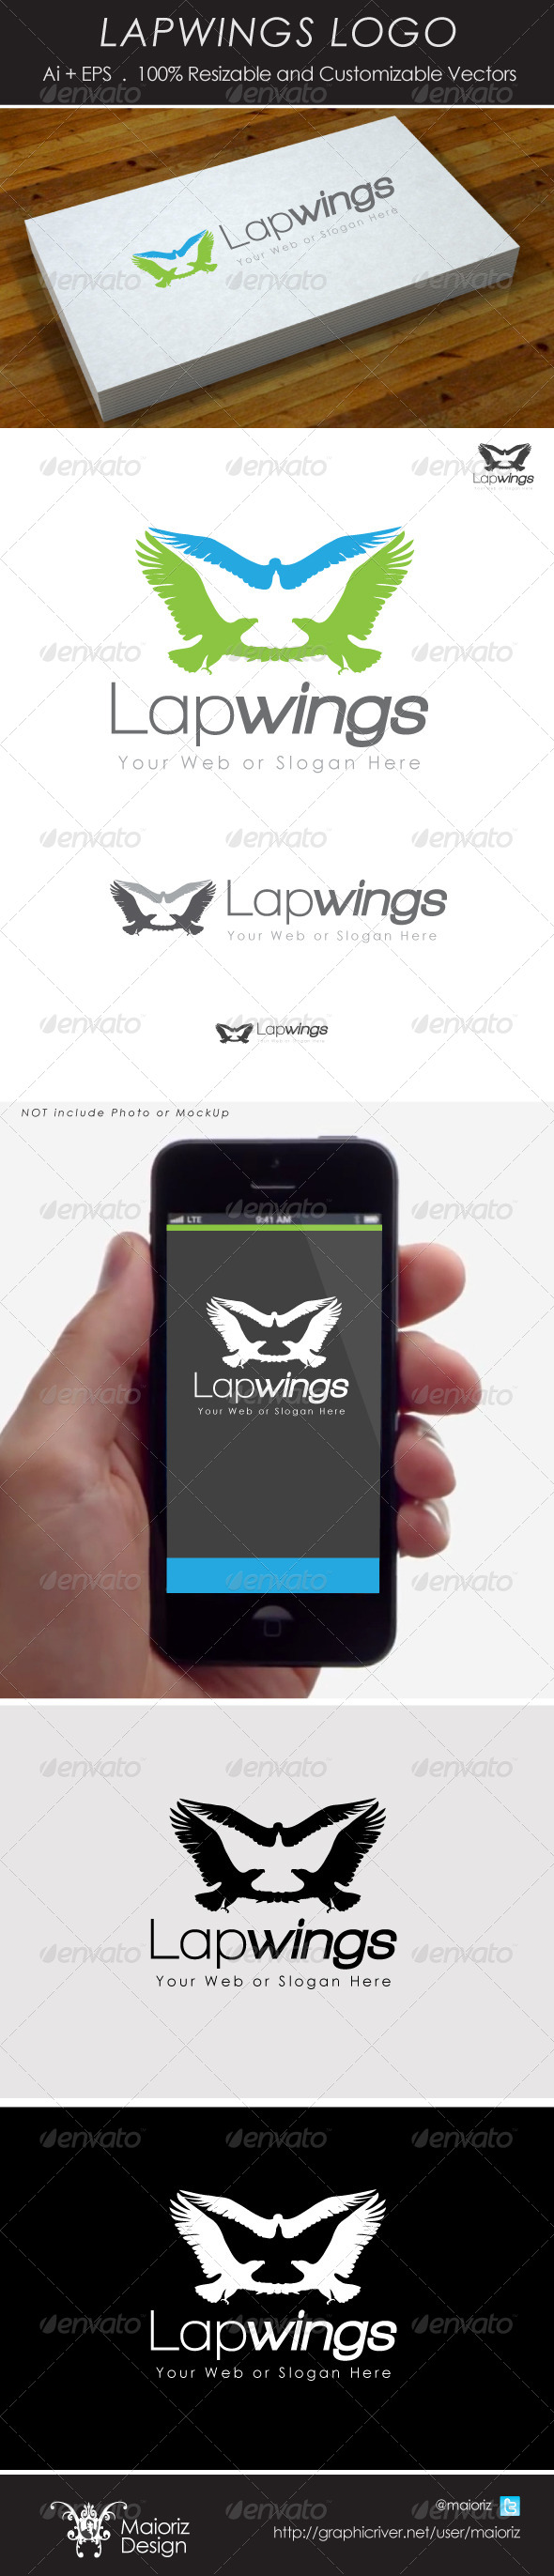 GraphicRiver Lapwings Logo 4271971